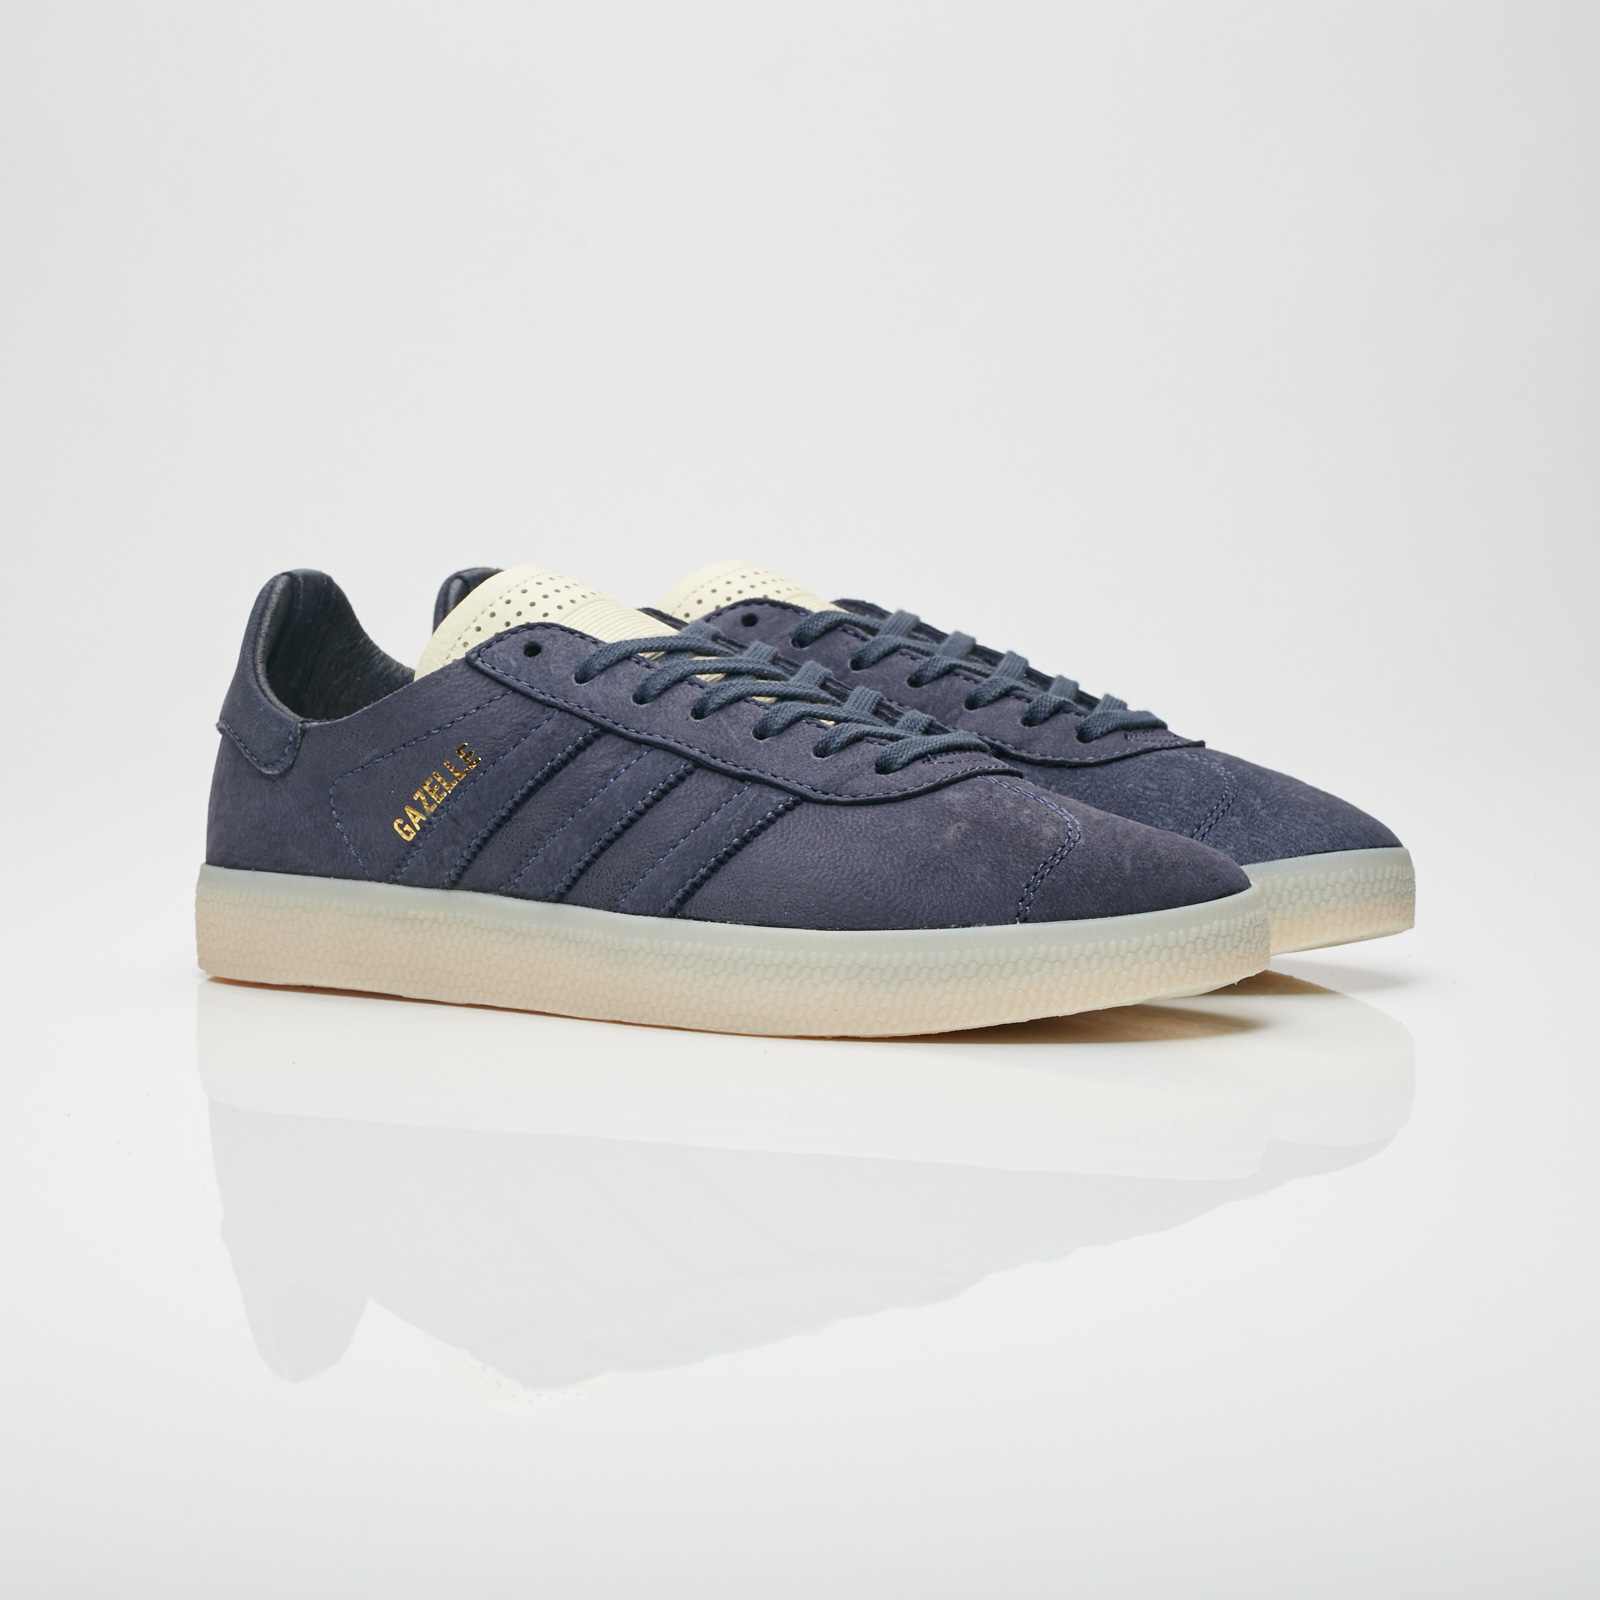 51aff8d46db adidas Gazelle Crafted - Bw1250 - Sneakersnstuff